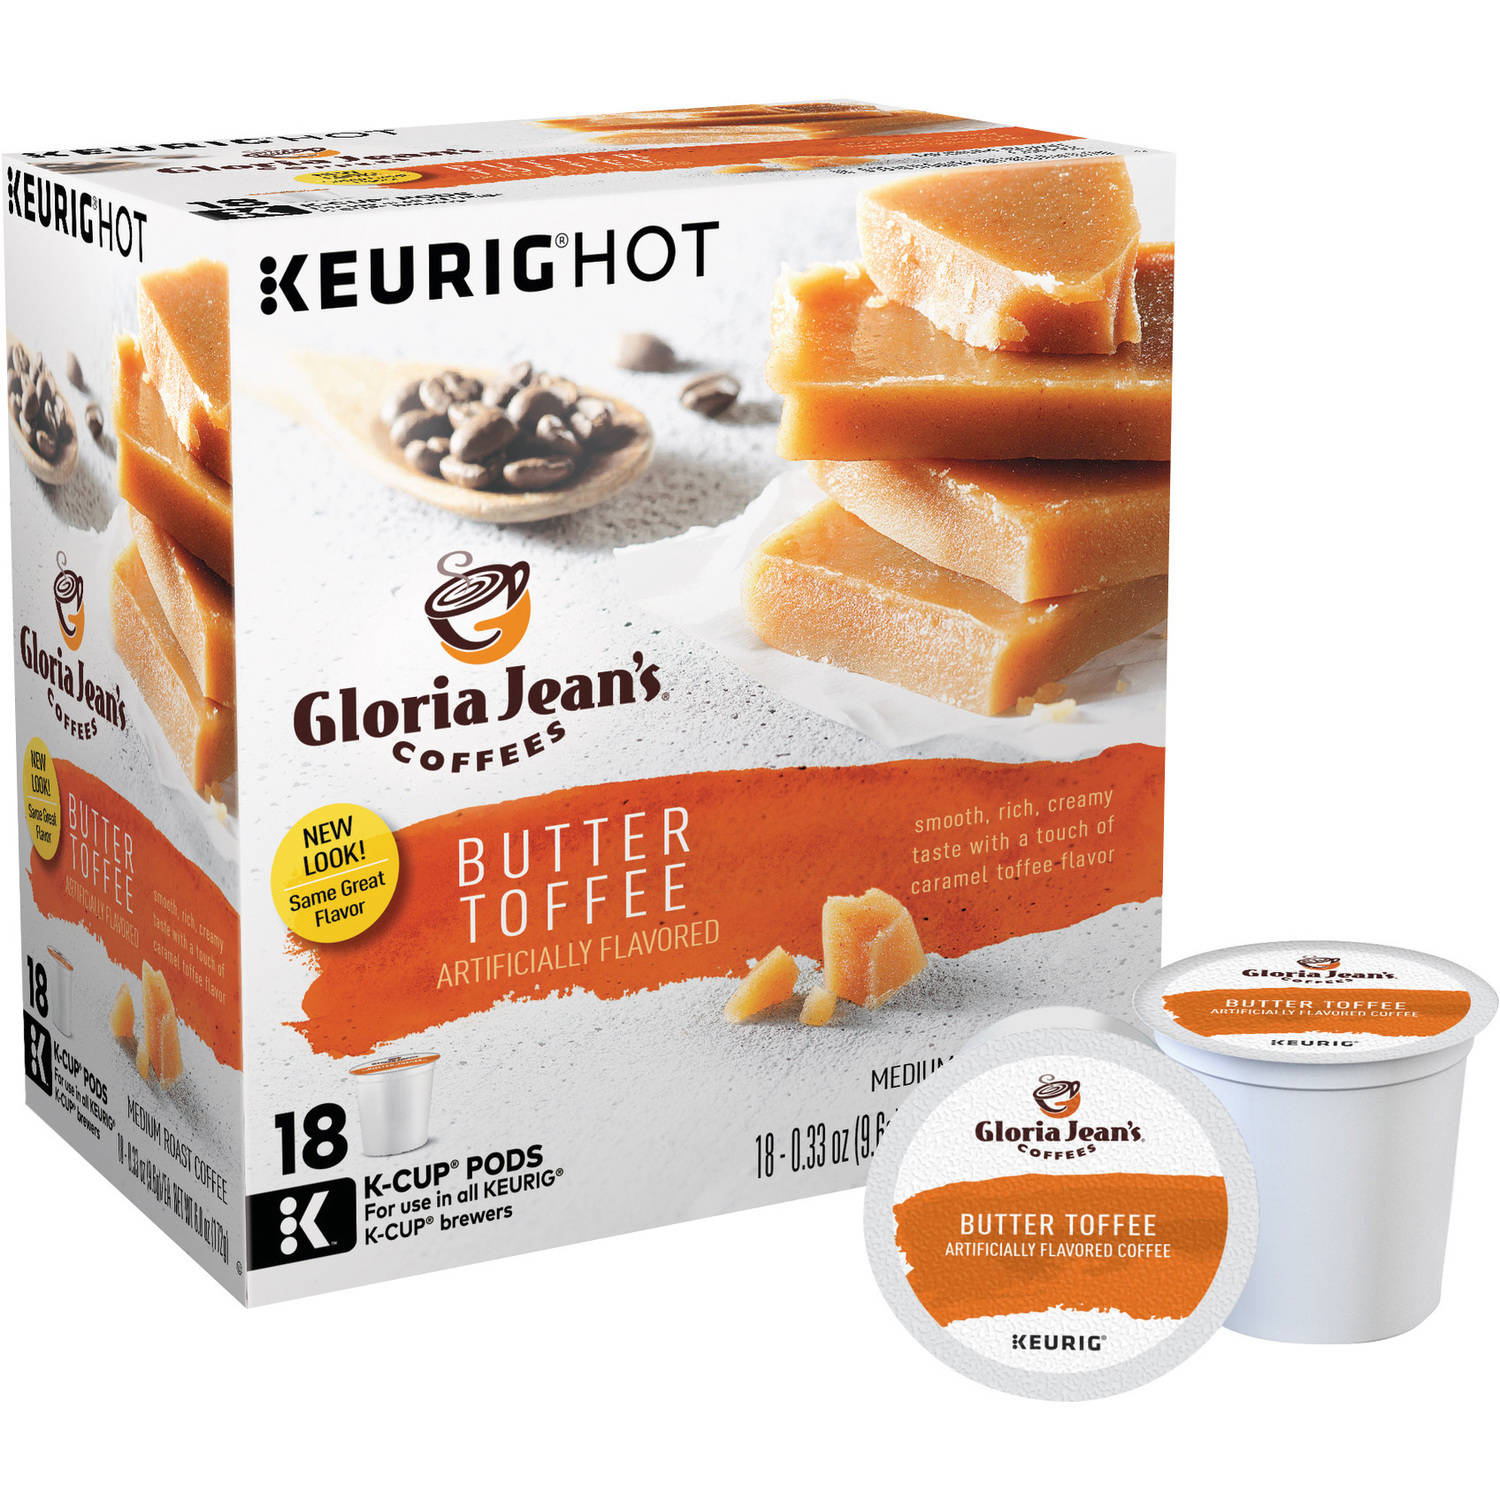 Keurig K-Cups Gloria Jean's Coffee, 18 count